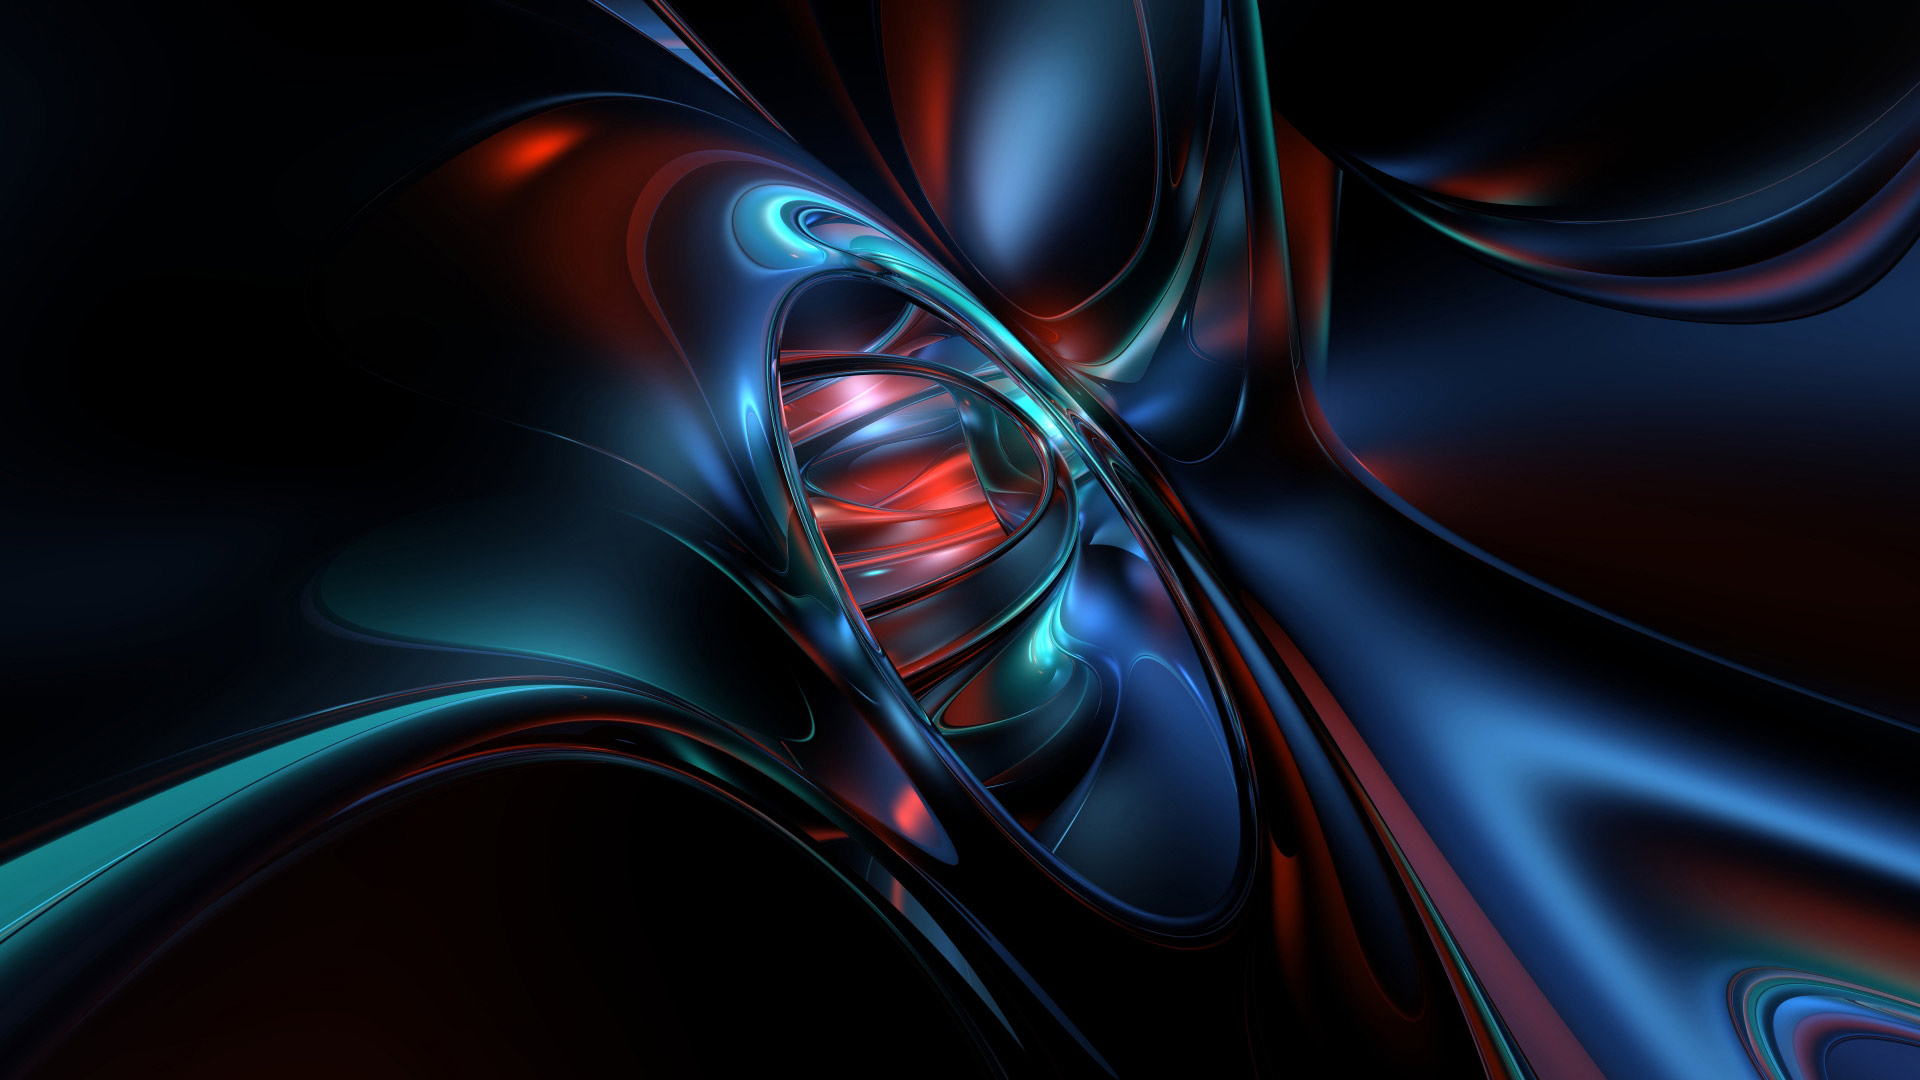 Dark 3D Abstract Wallpapers HD Wallpapers 1920x1080